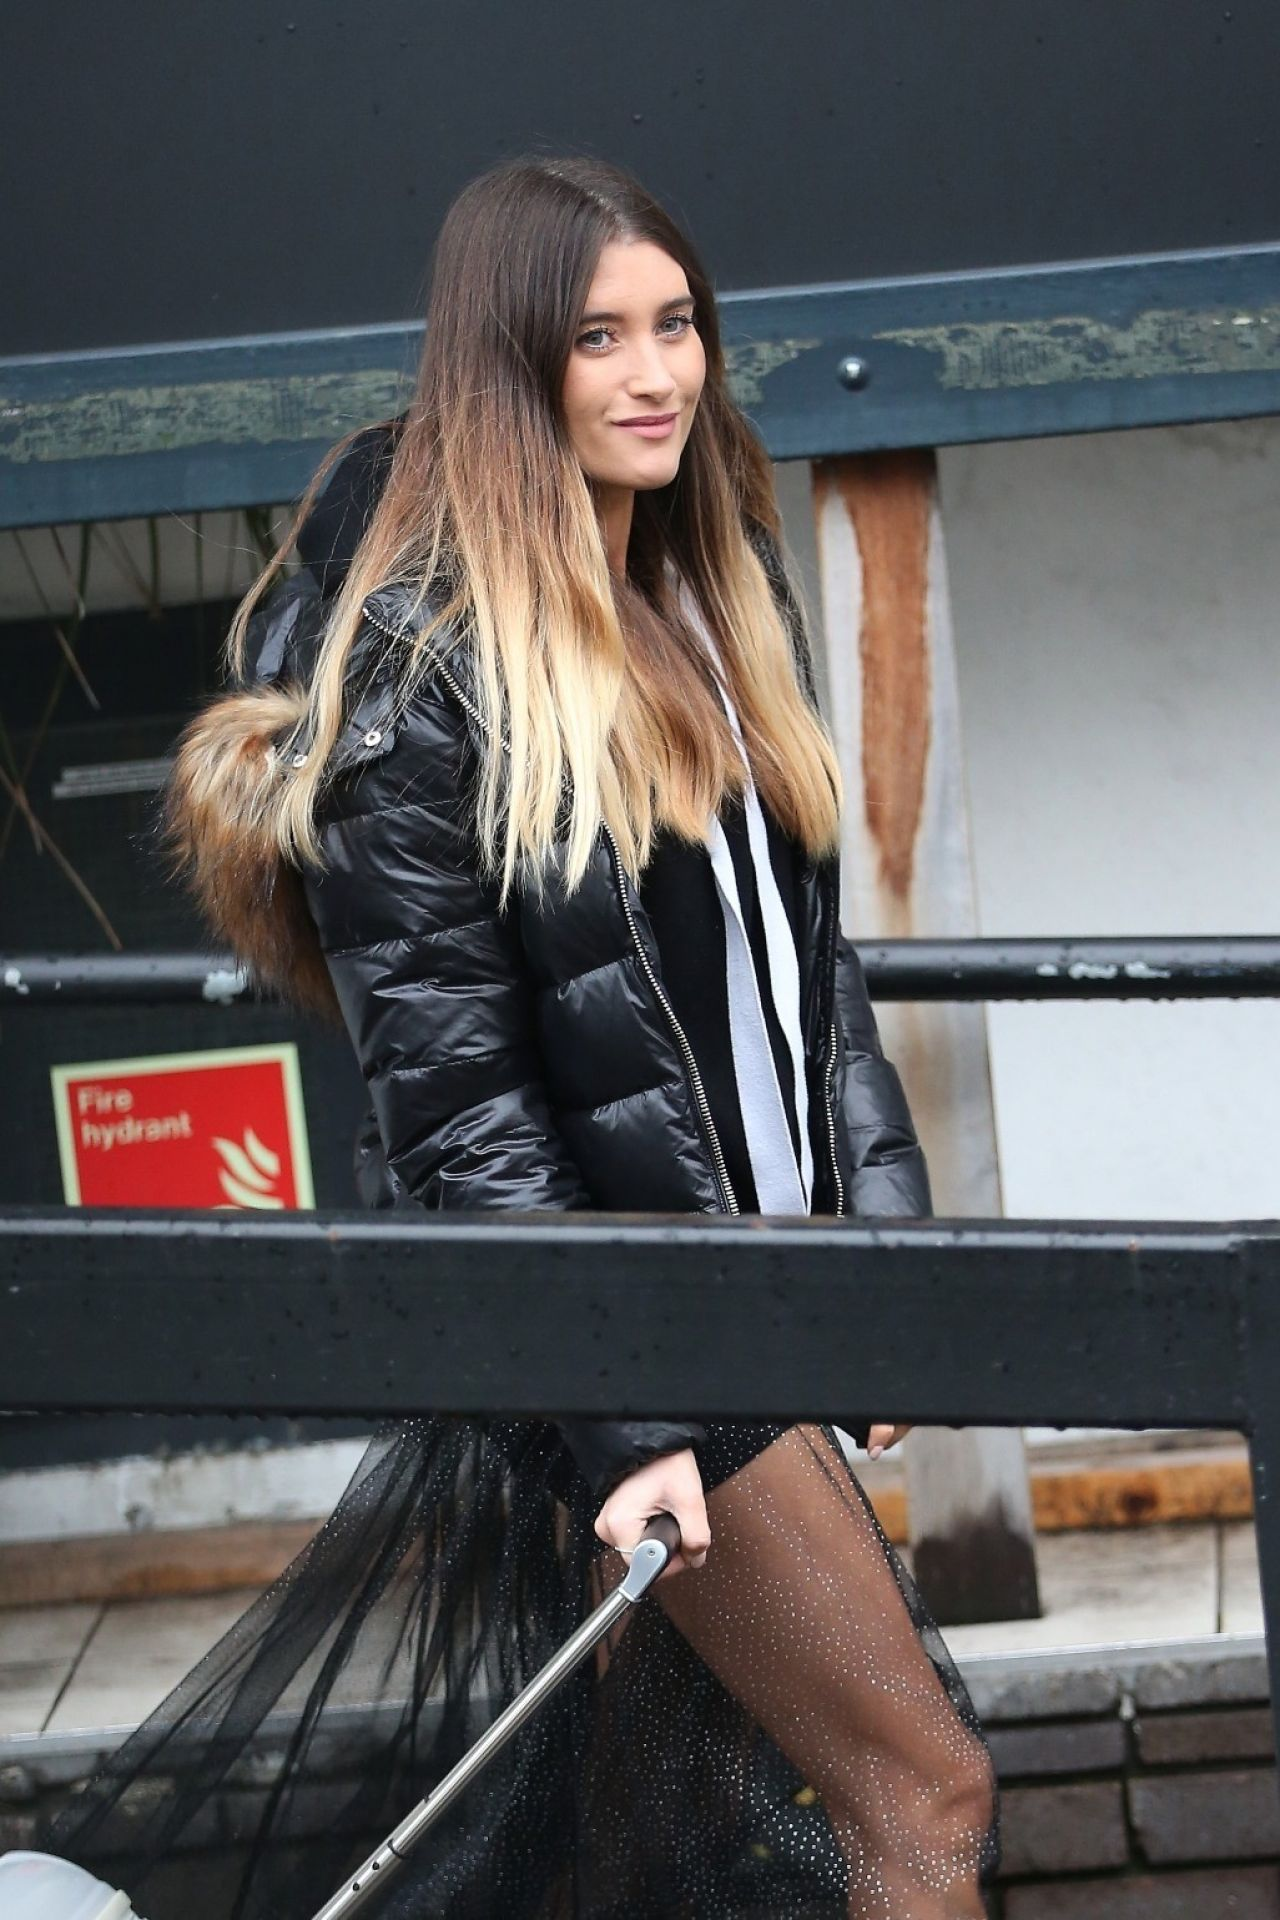 charley webb - photo #37